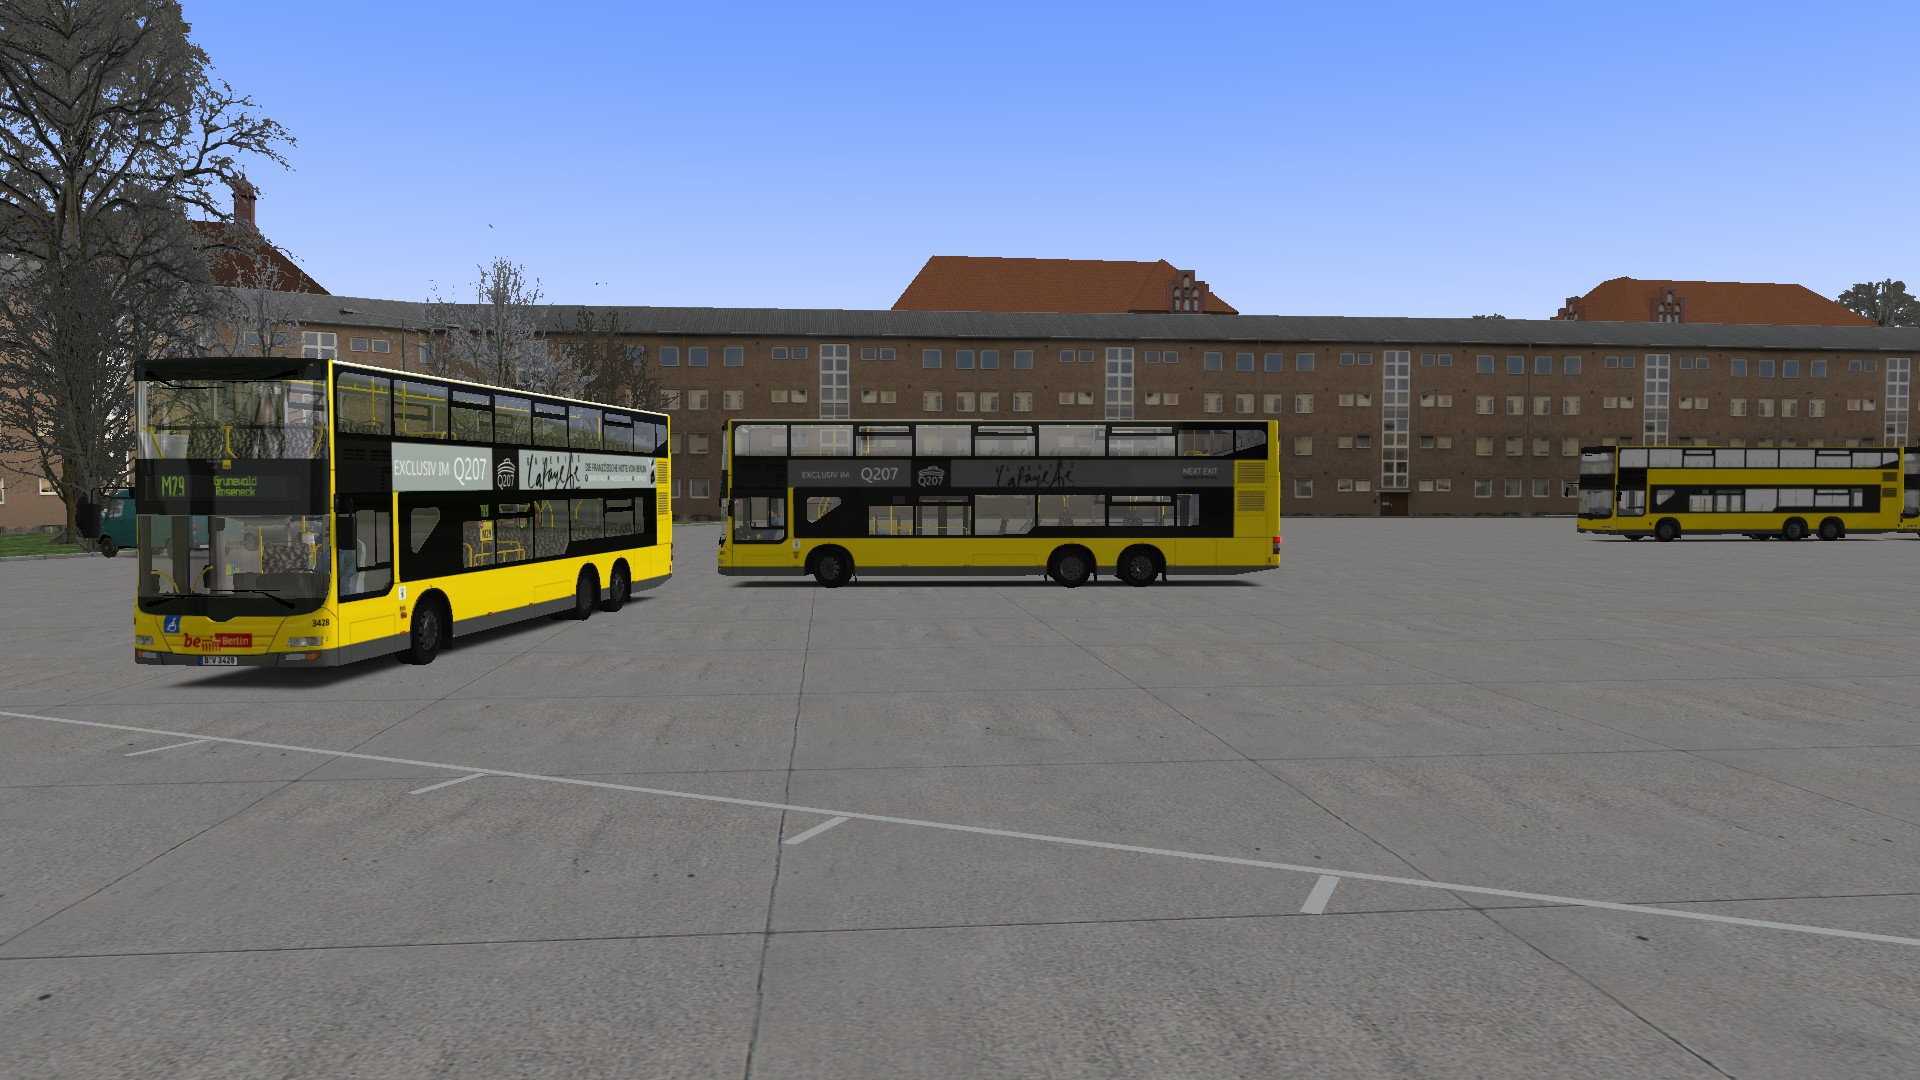 omsimaks repaintecke neu man dl09 x10 berlinovo bus repaints bus repaints marcels omsi. Black Bedroom Furniture Sets. Home Design Ideas